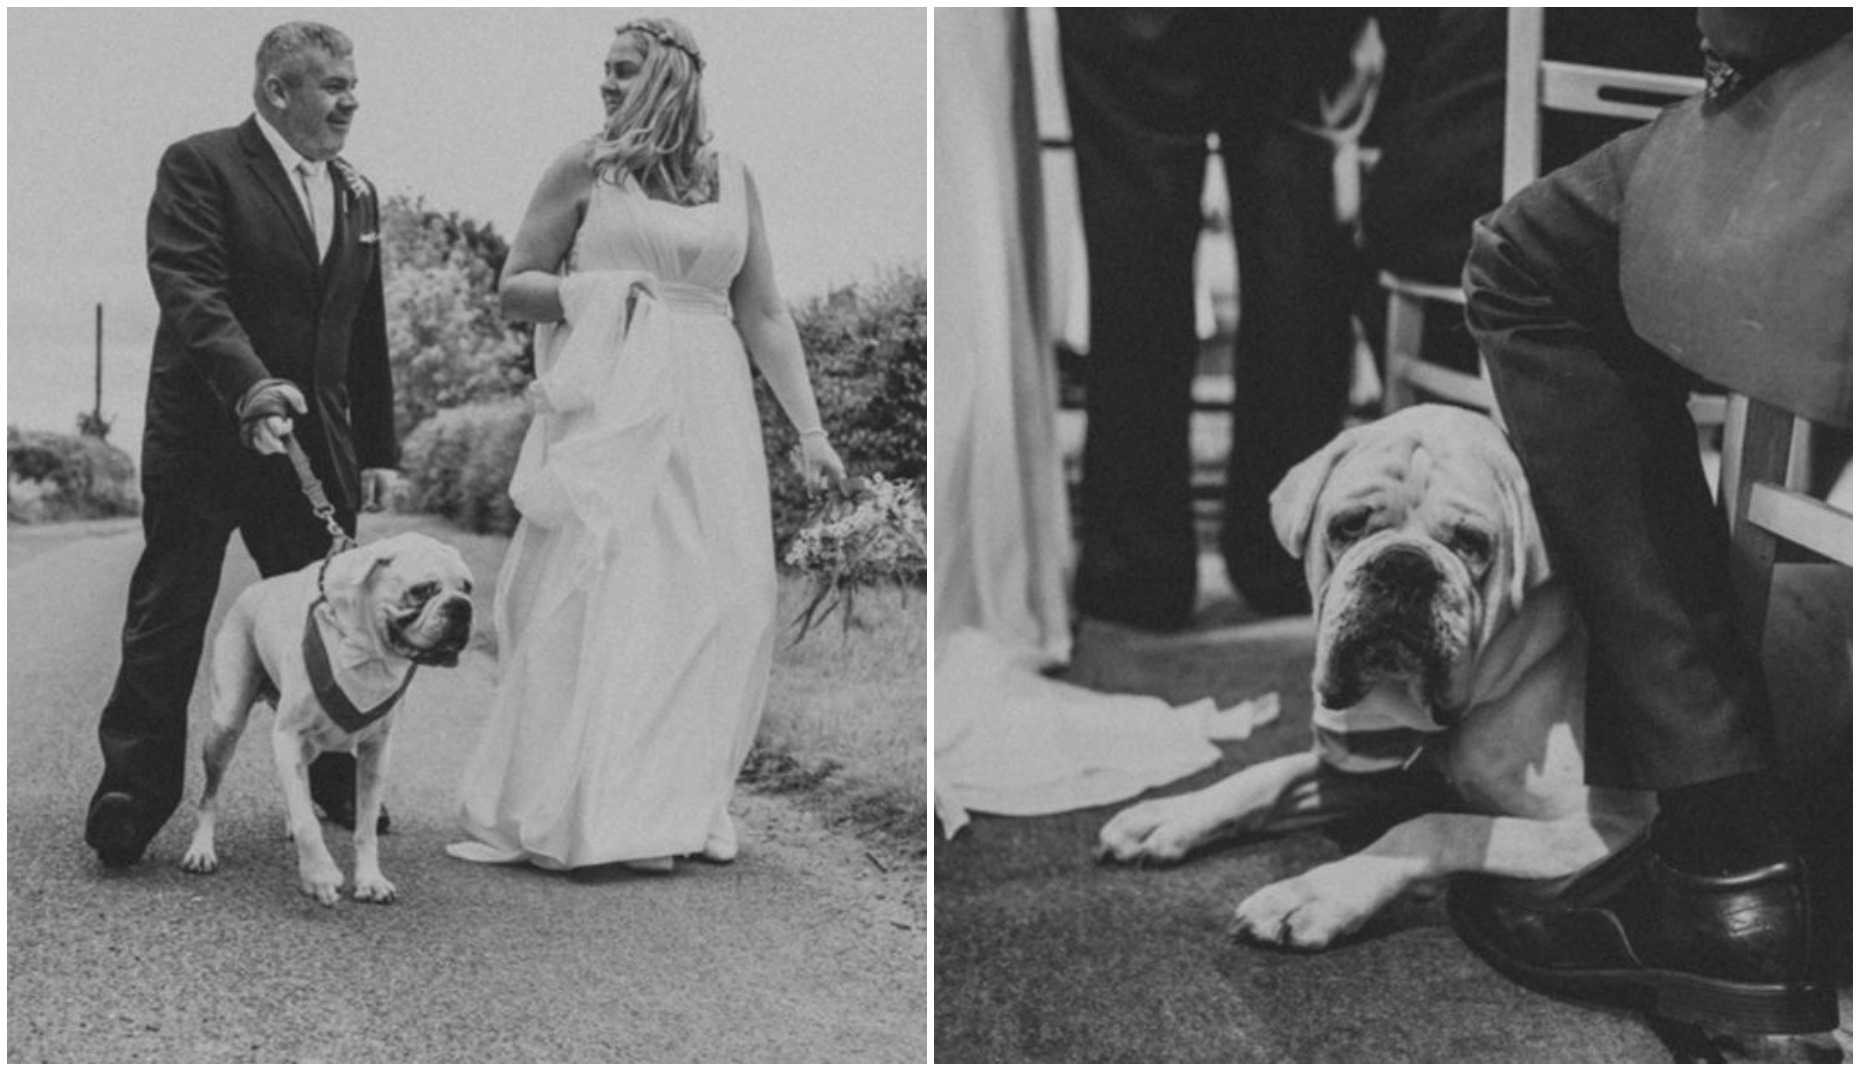 Emma and Shaun's wedding day wouldn't have been complete without Buster.